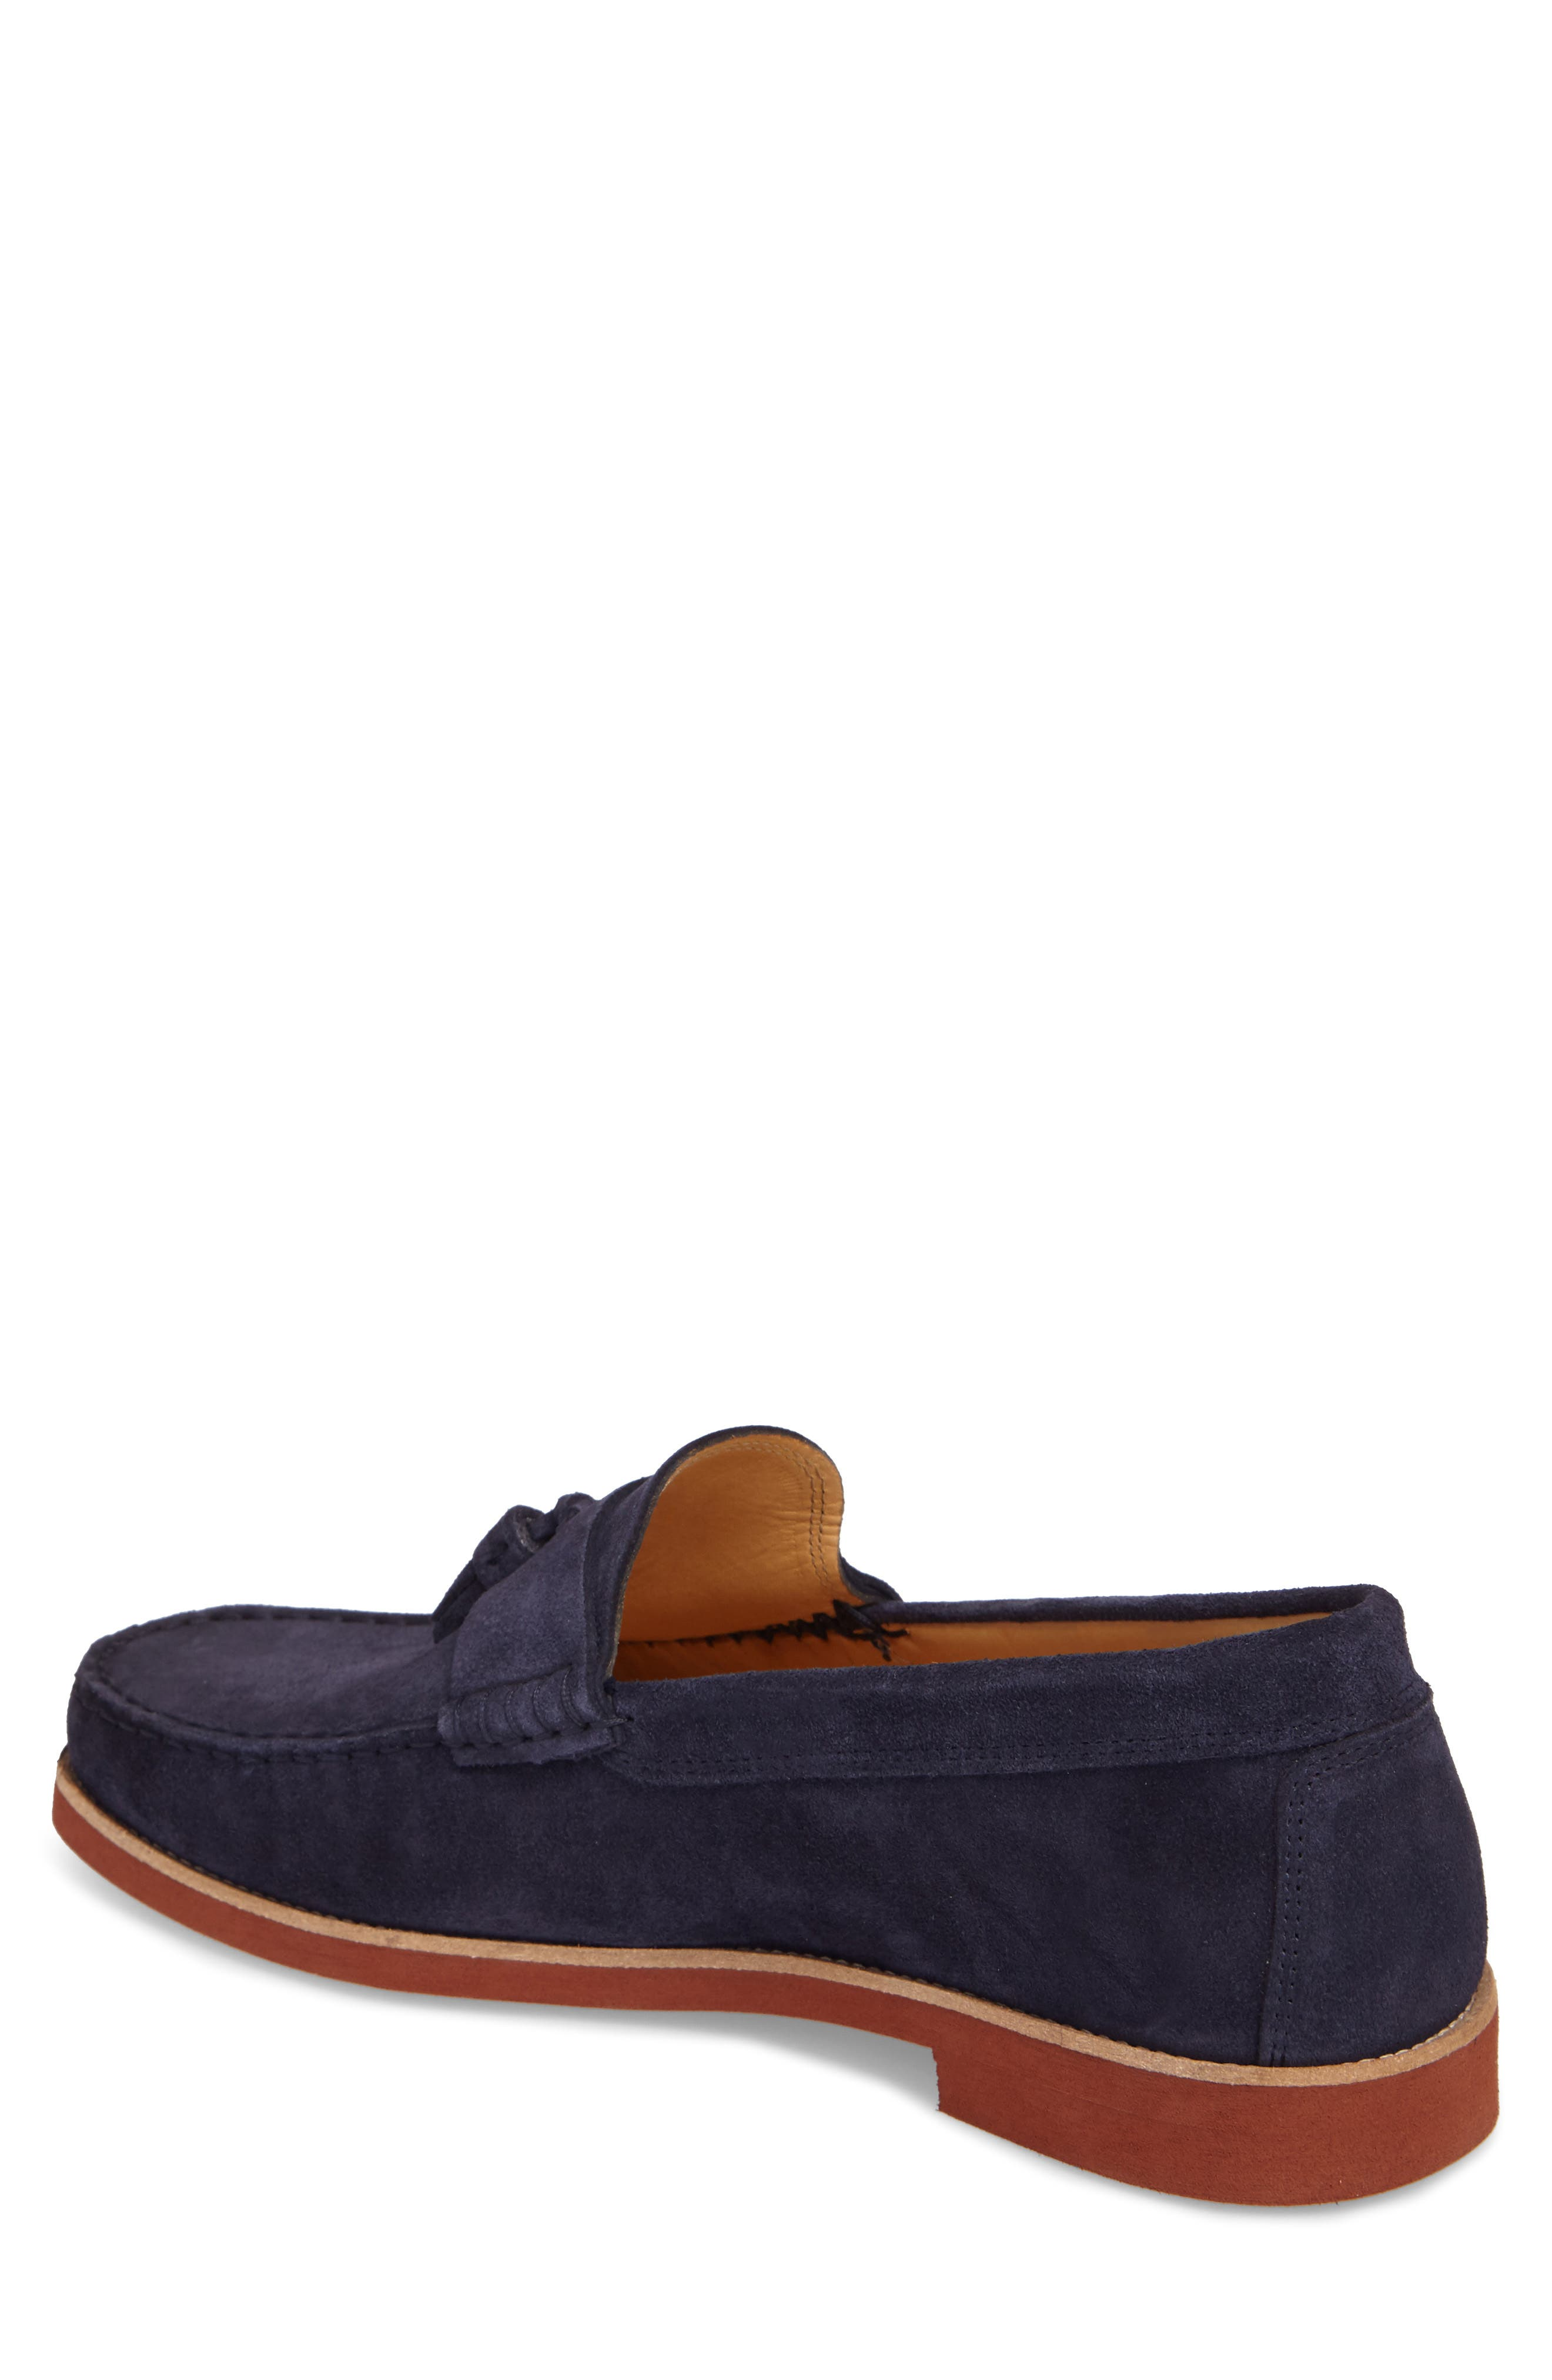 Stowes Tassel Loafer,                             Alternate thumbnail 2, color,                             410